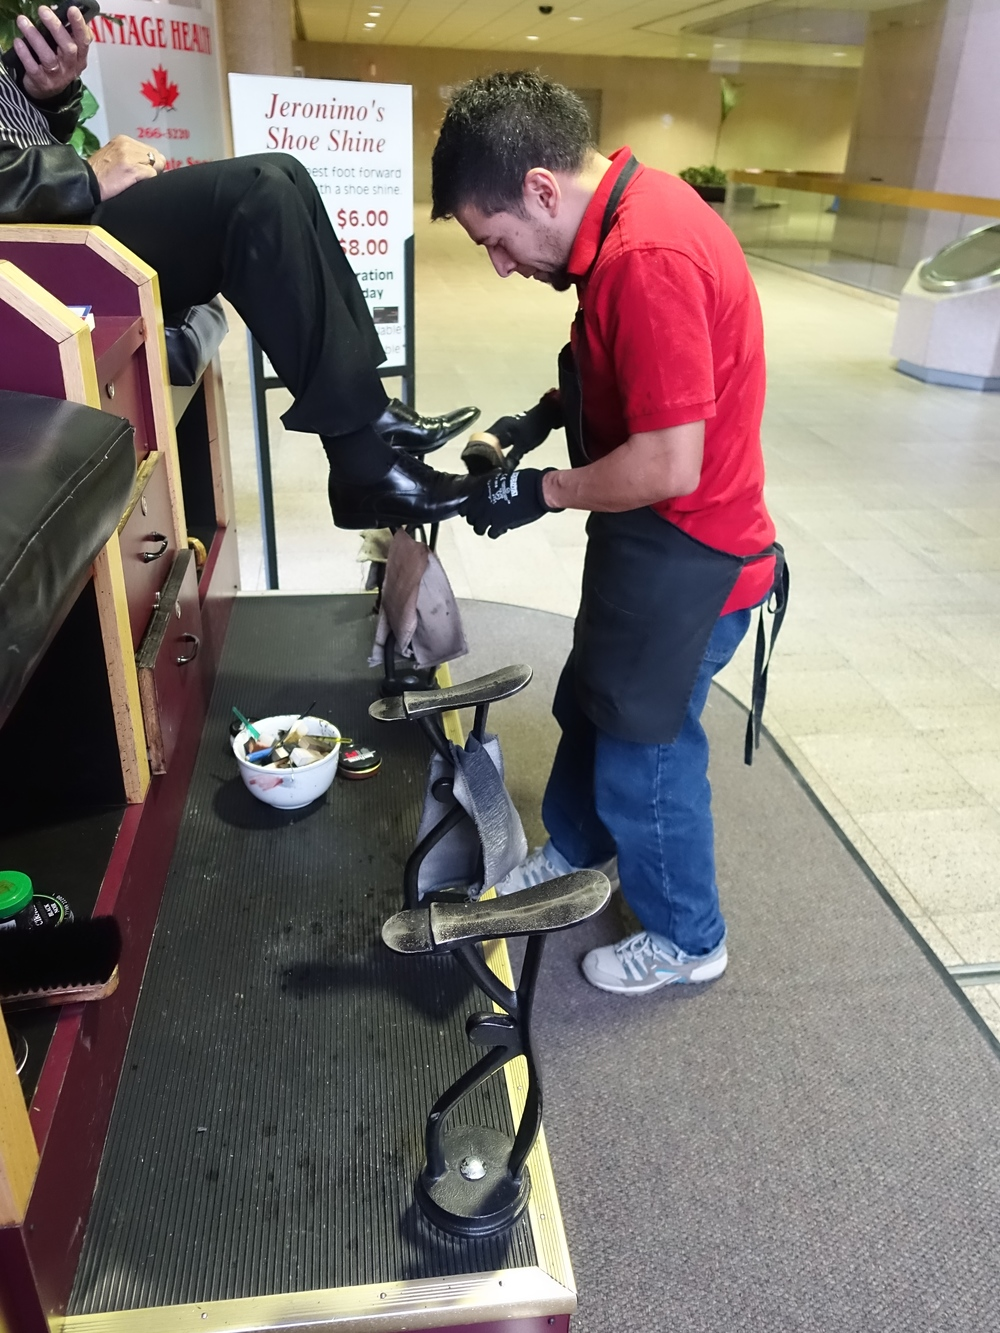 One of eight shoe shine stations in the +15 walkway.